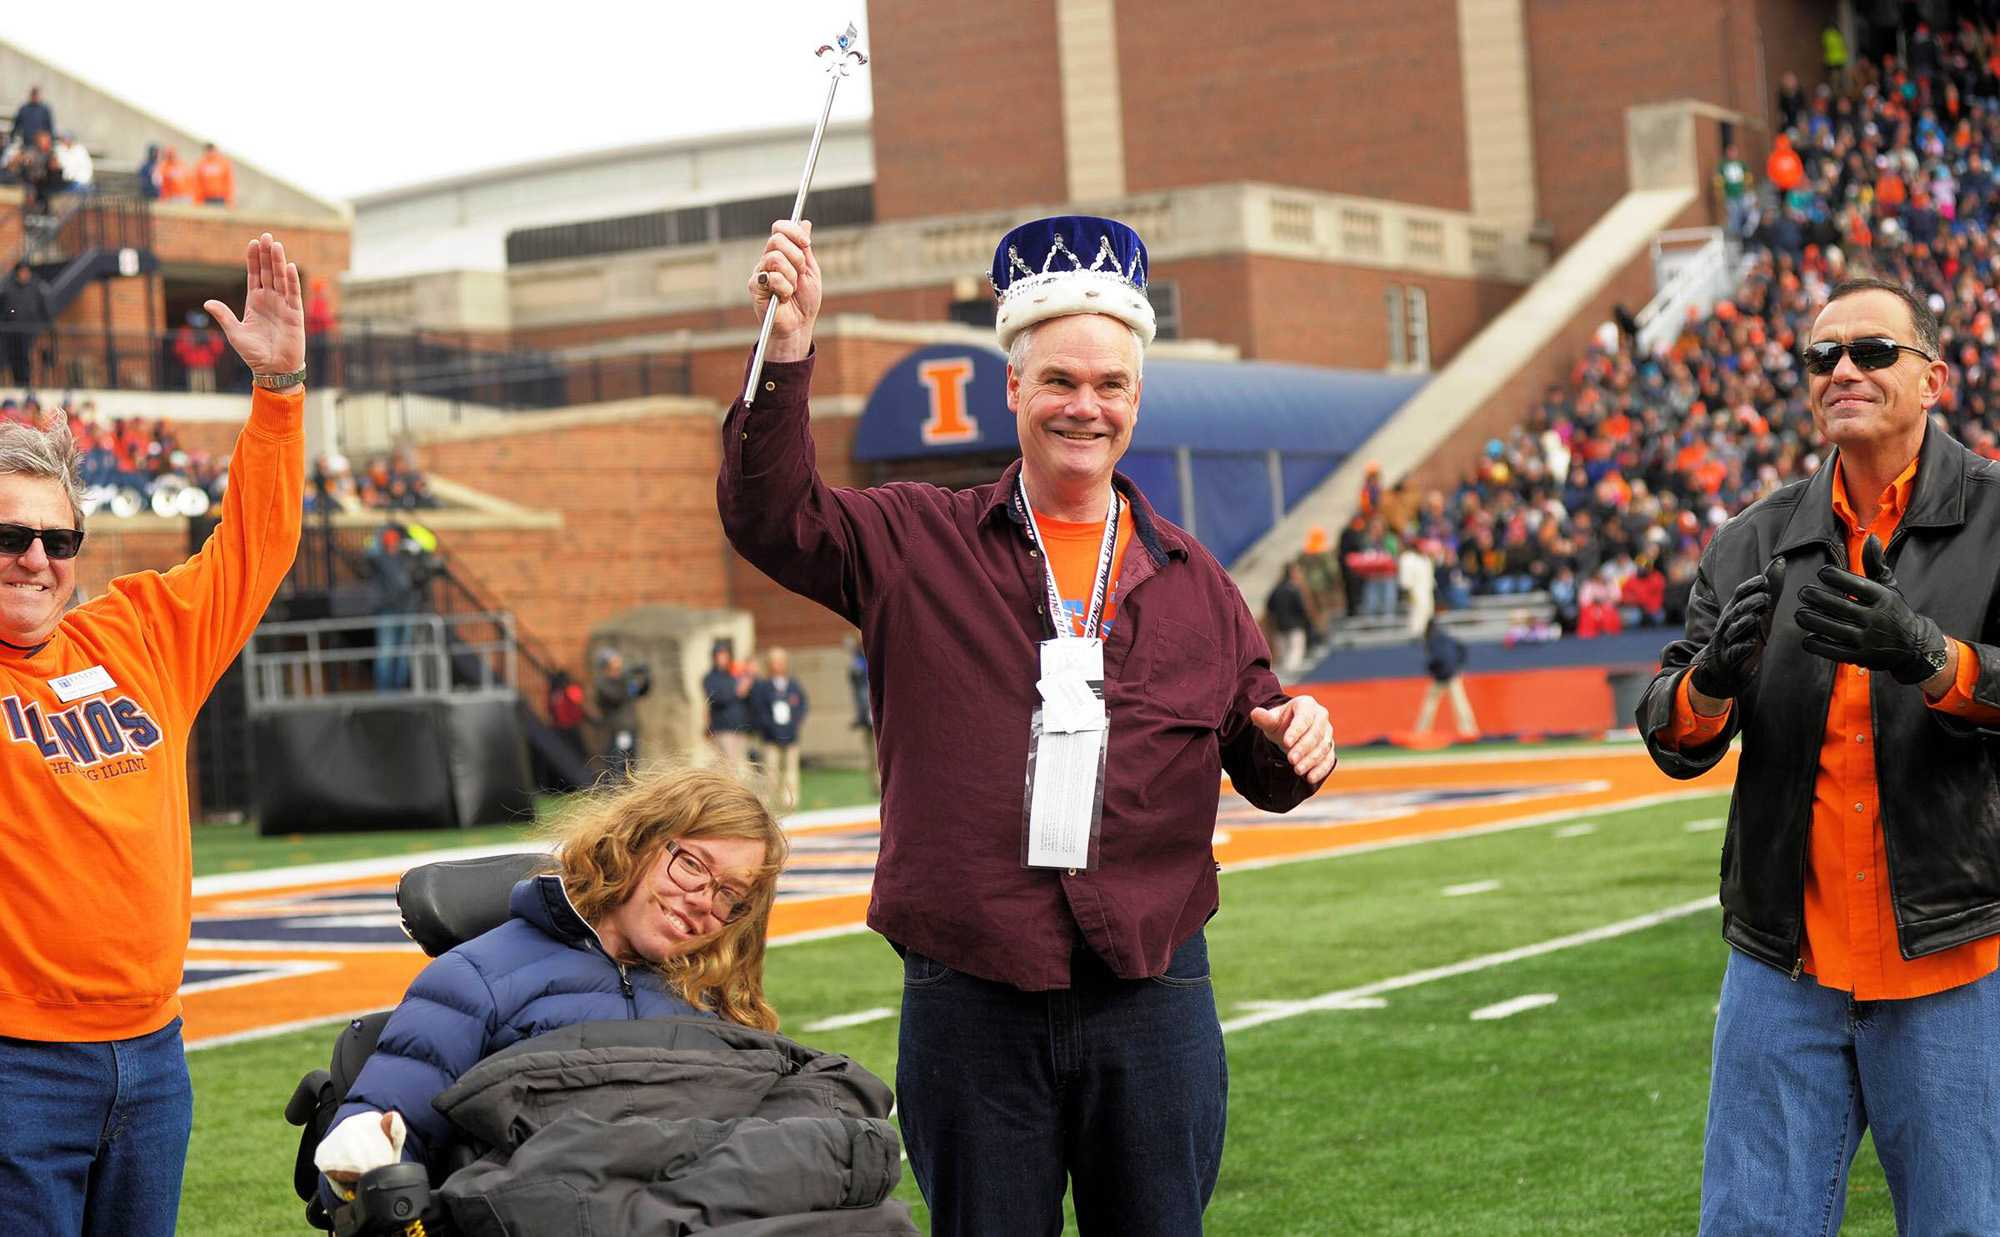 Christopher Downes was crowned King Dad at Memorial Stadium last year.